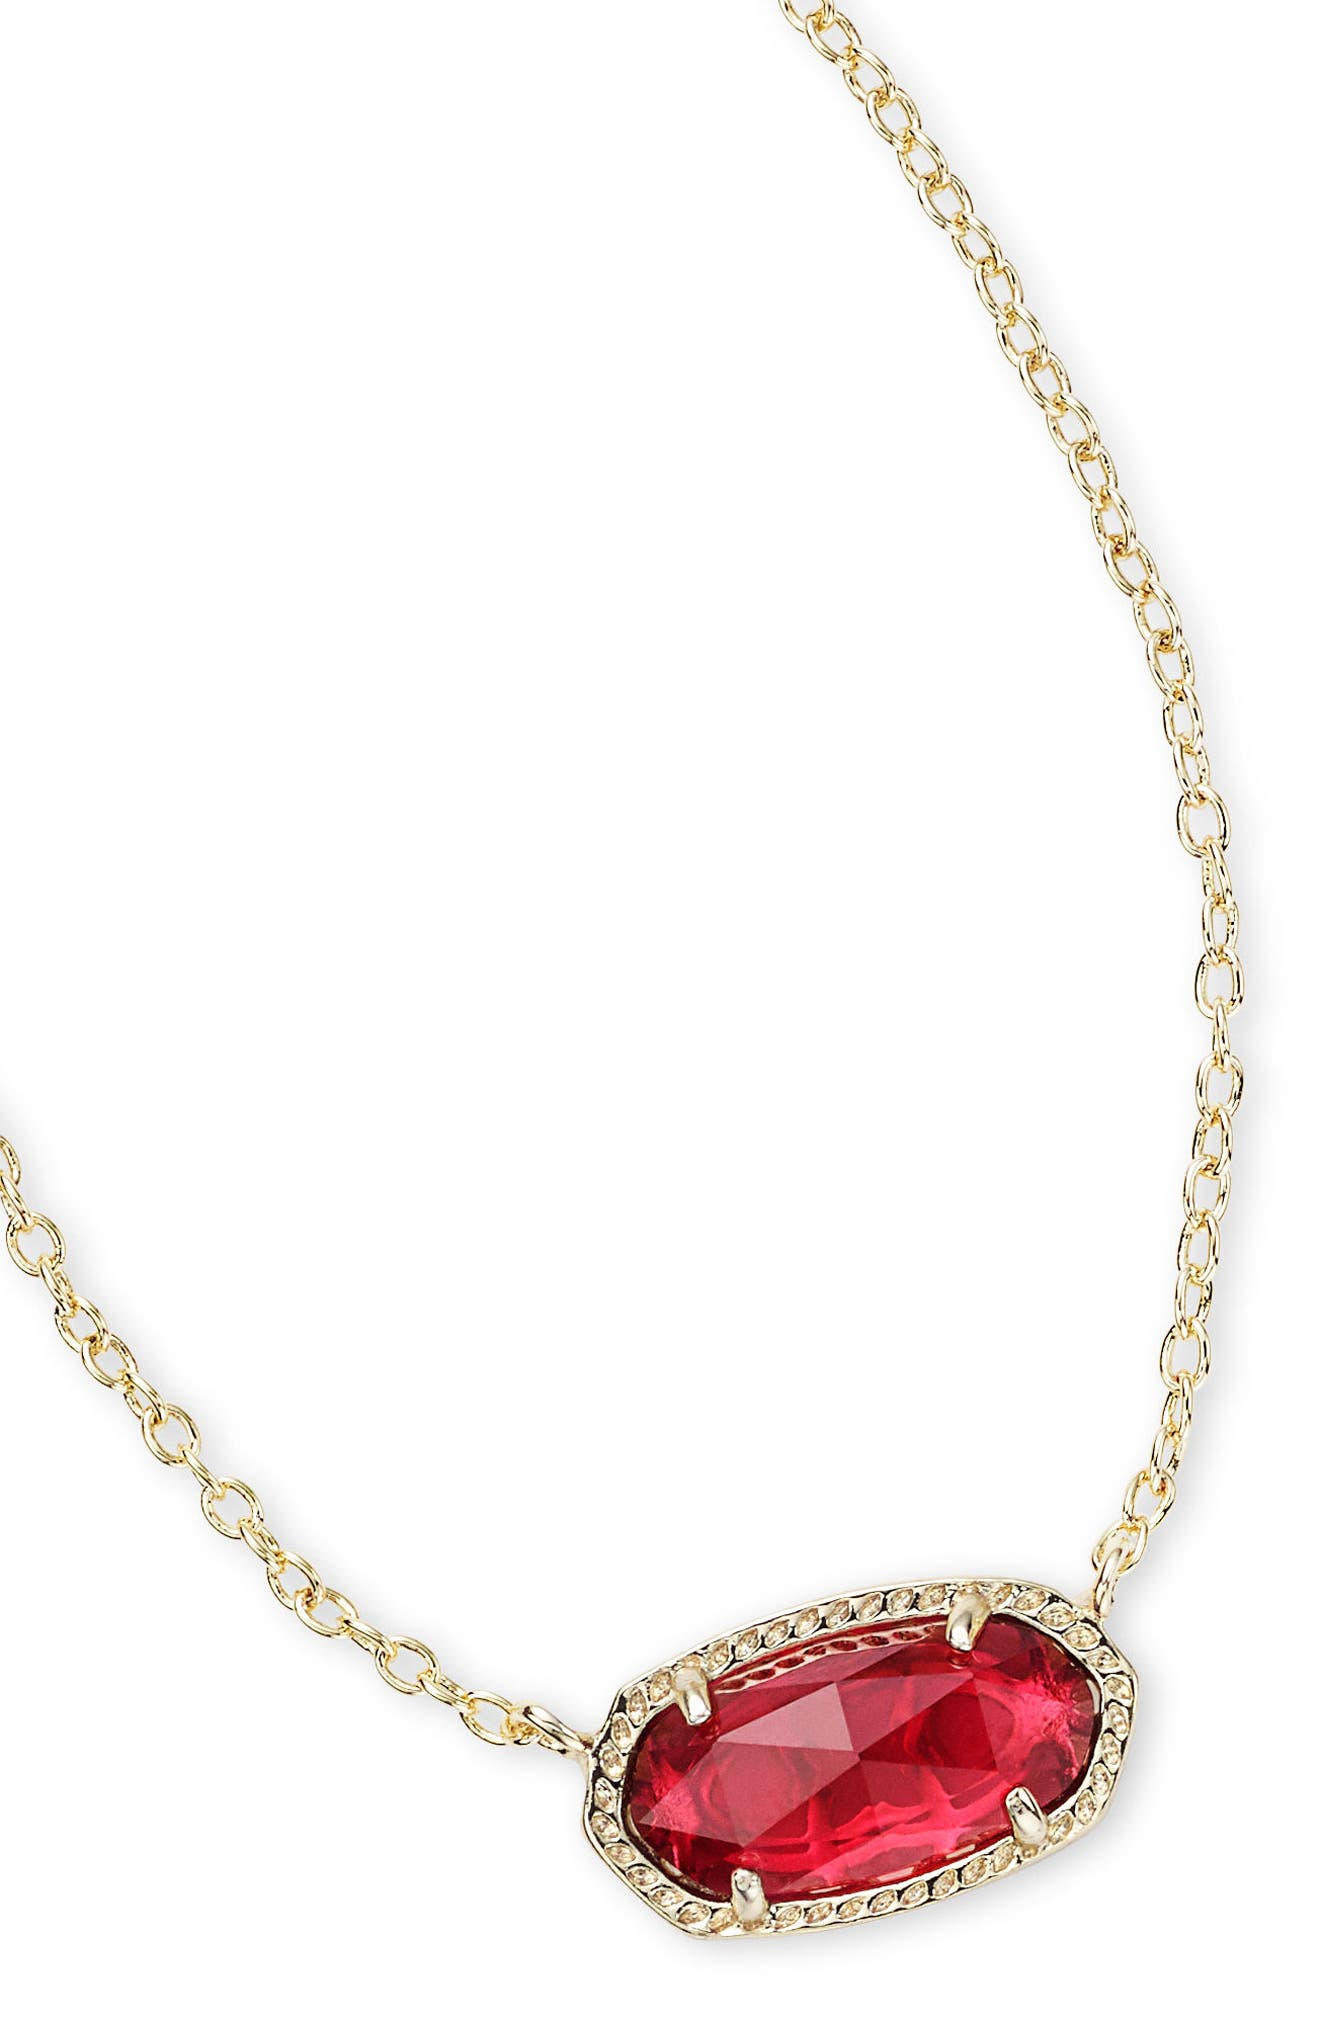 KENDRA SCOTT, Elisa Birthstone Pendant Necklace, Alternate thumbnail 6, color, JANUARY/BERRY/GOLD